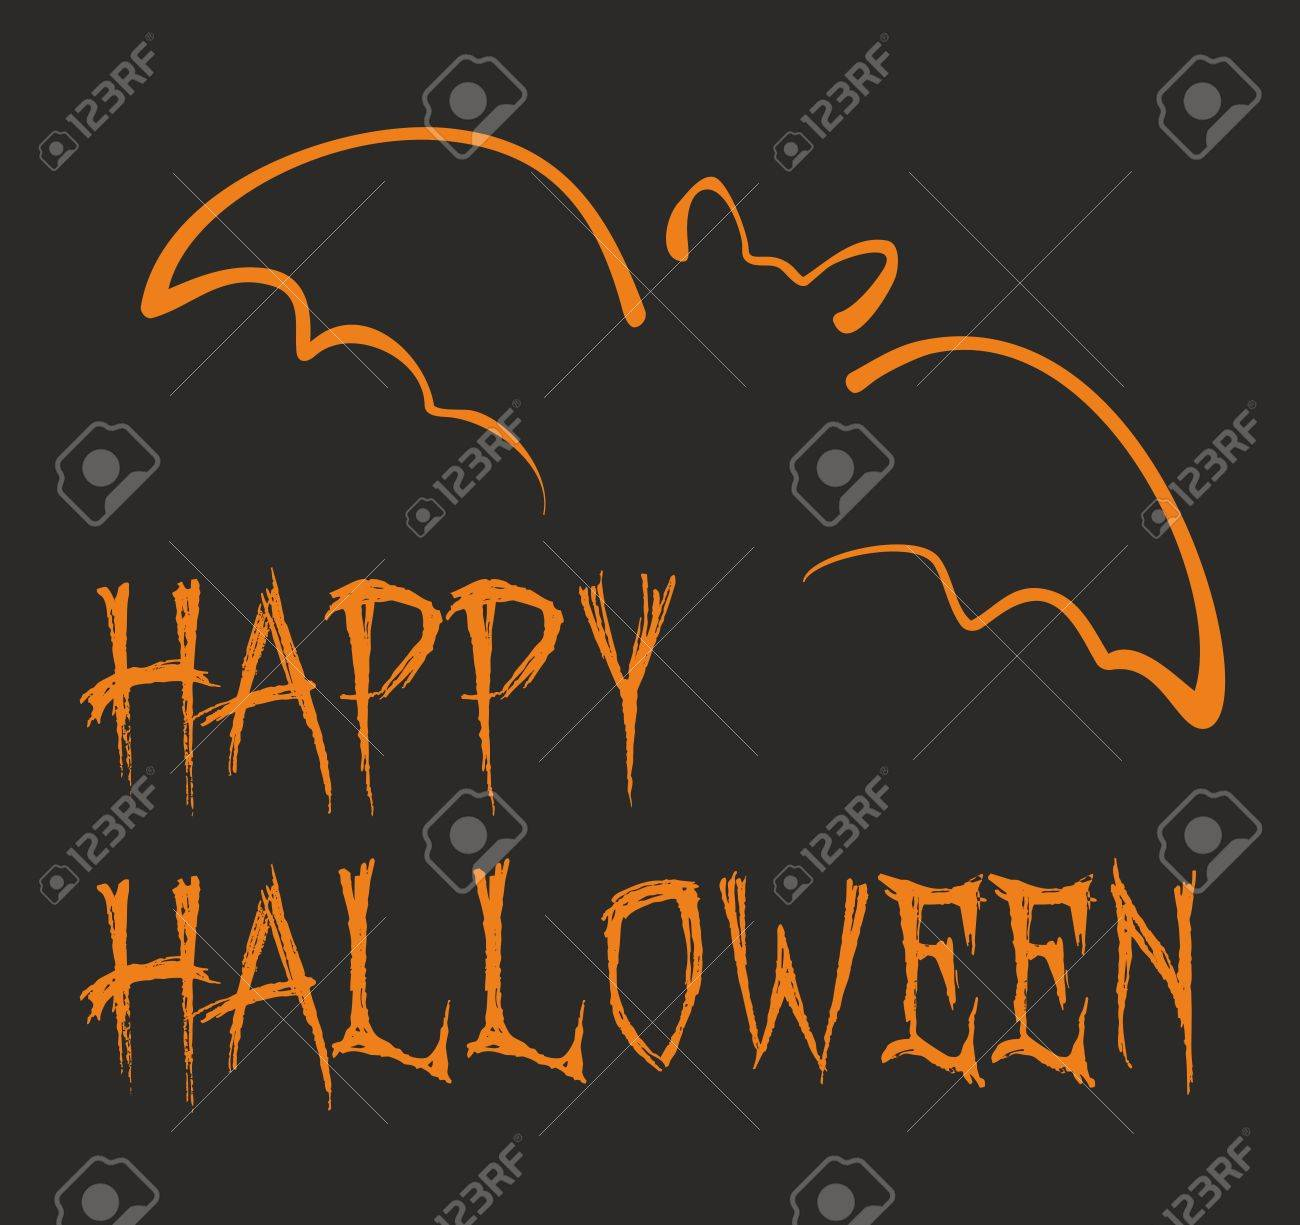 Happy Halloween Dark Party Card With Orange Bat And Hand Drawn Wishes On  Black Background Stock